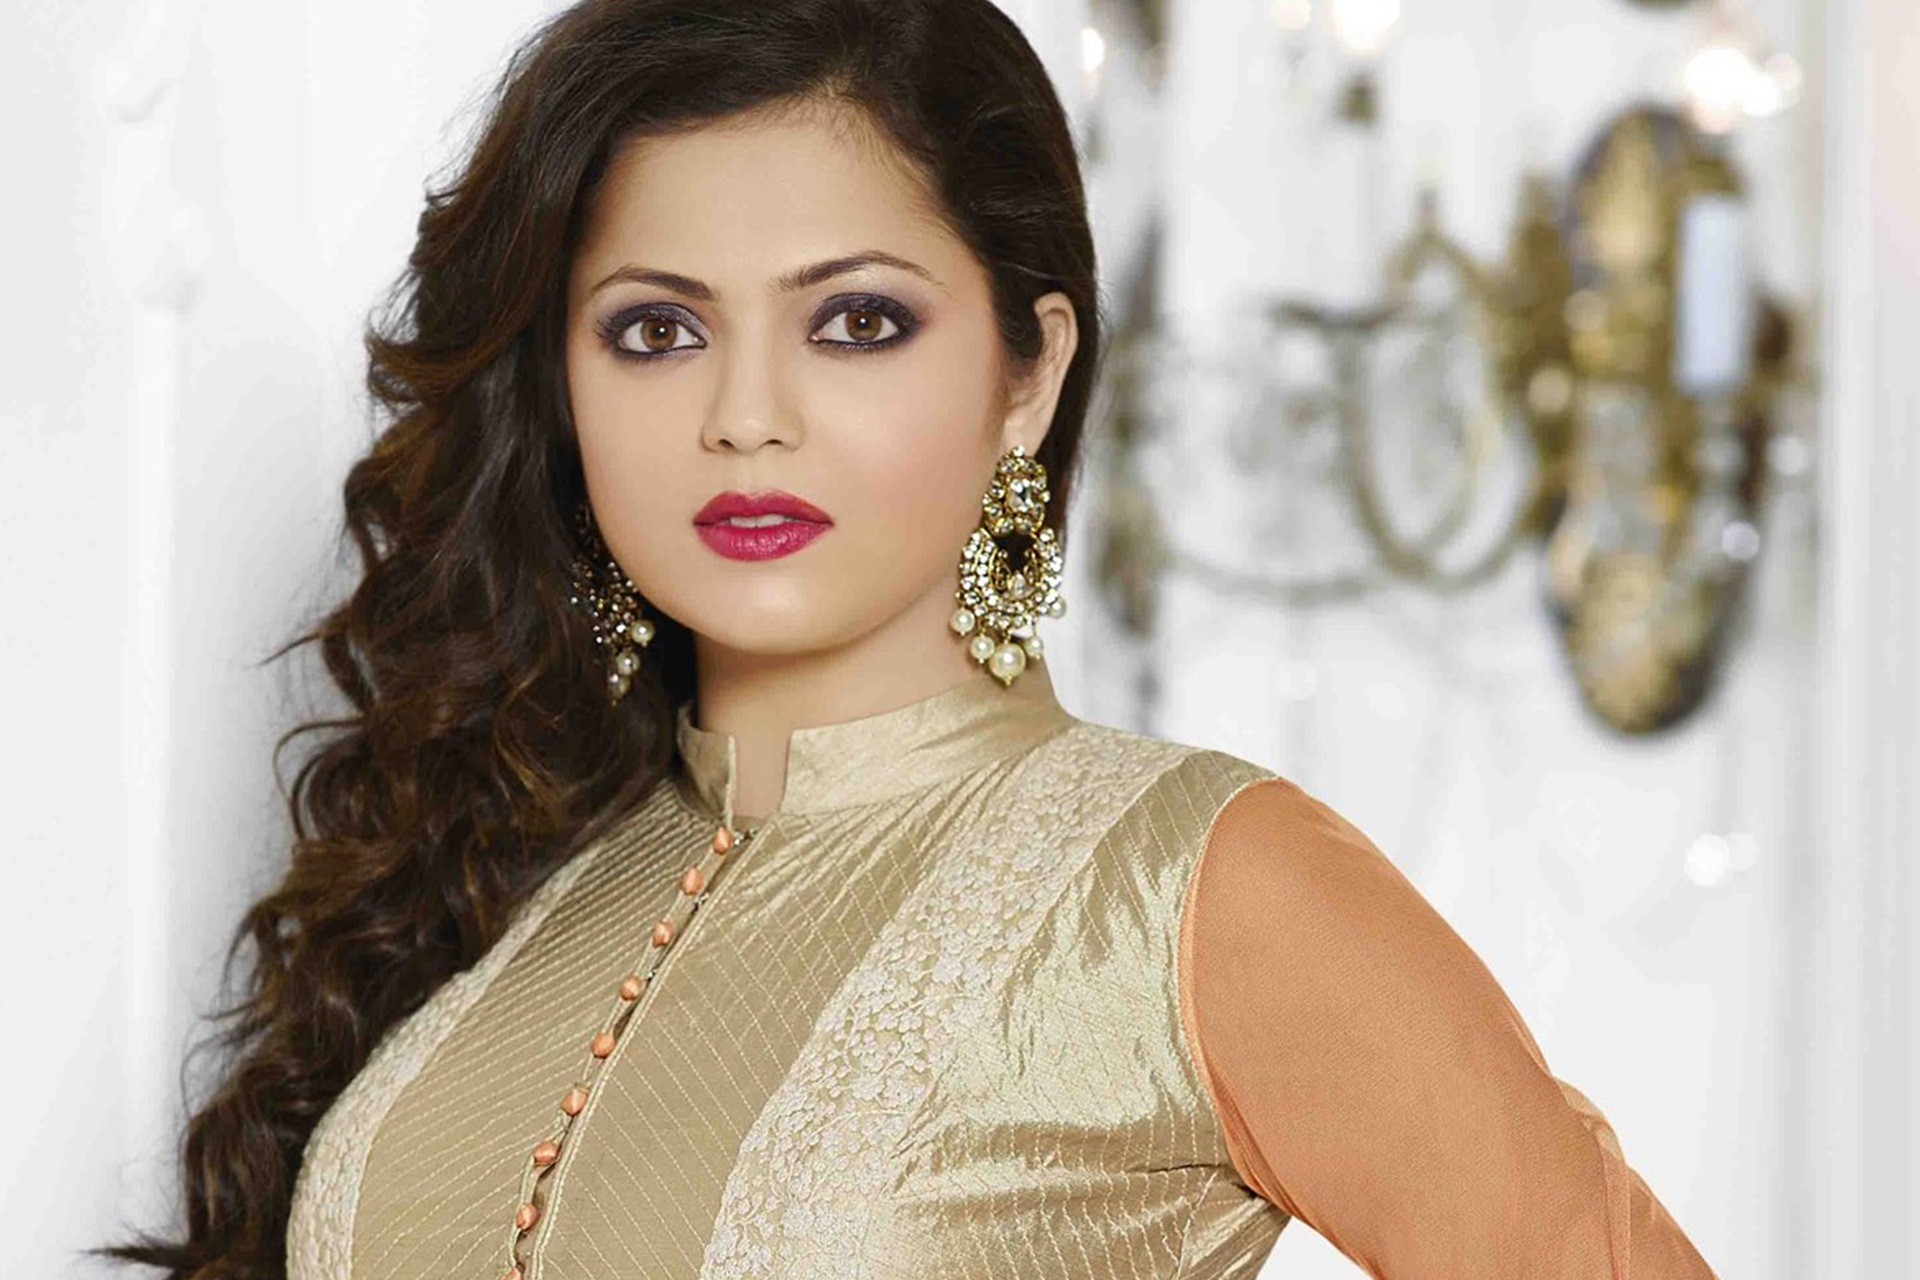 wonderful drashti dhami beautiful look mobile background hd wallpaper download free